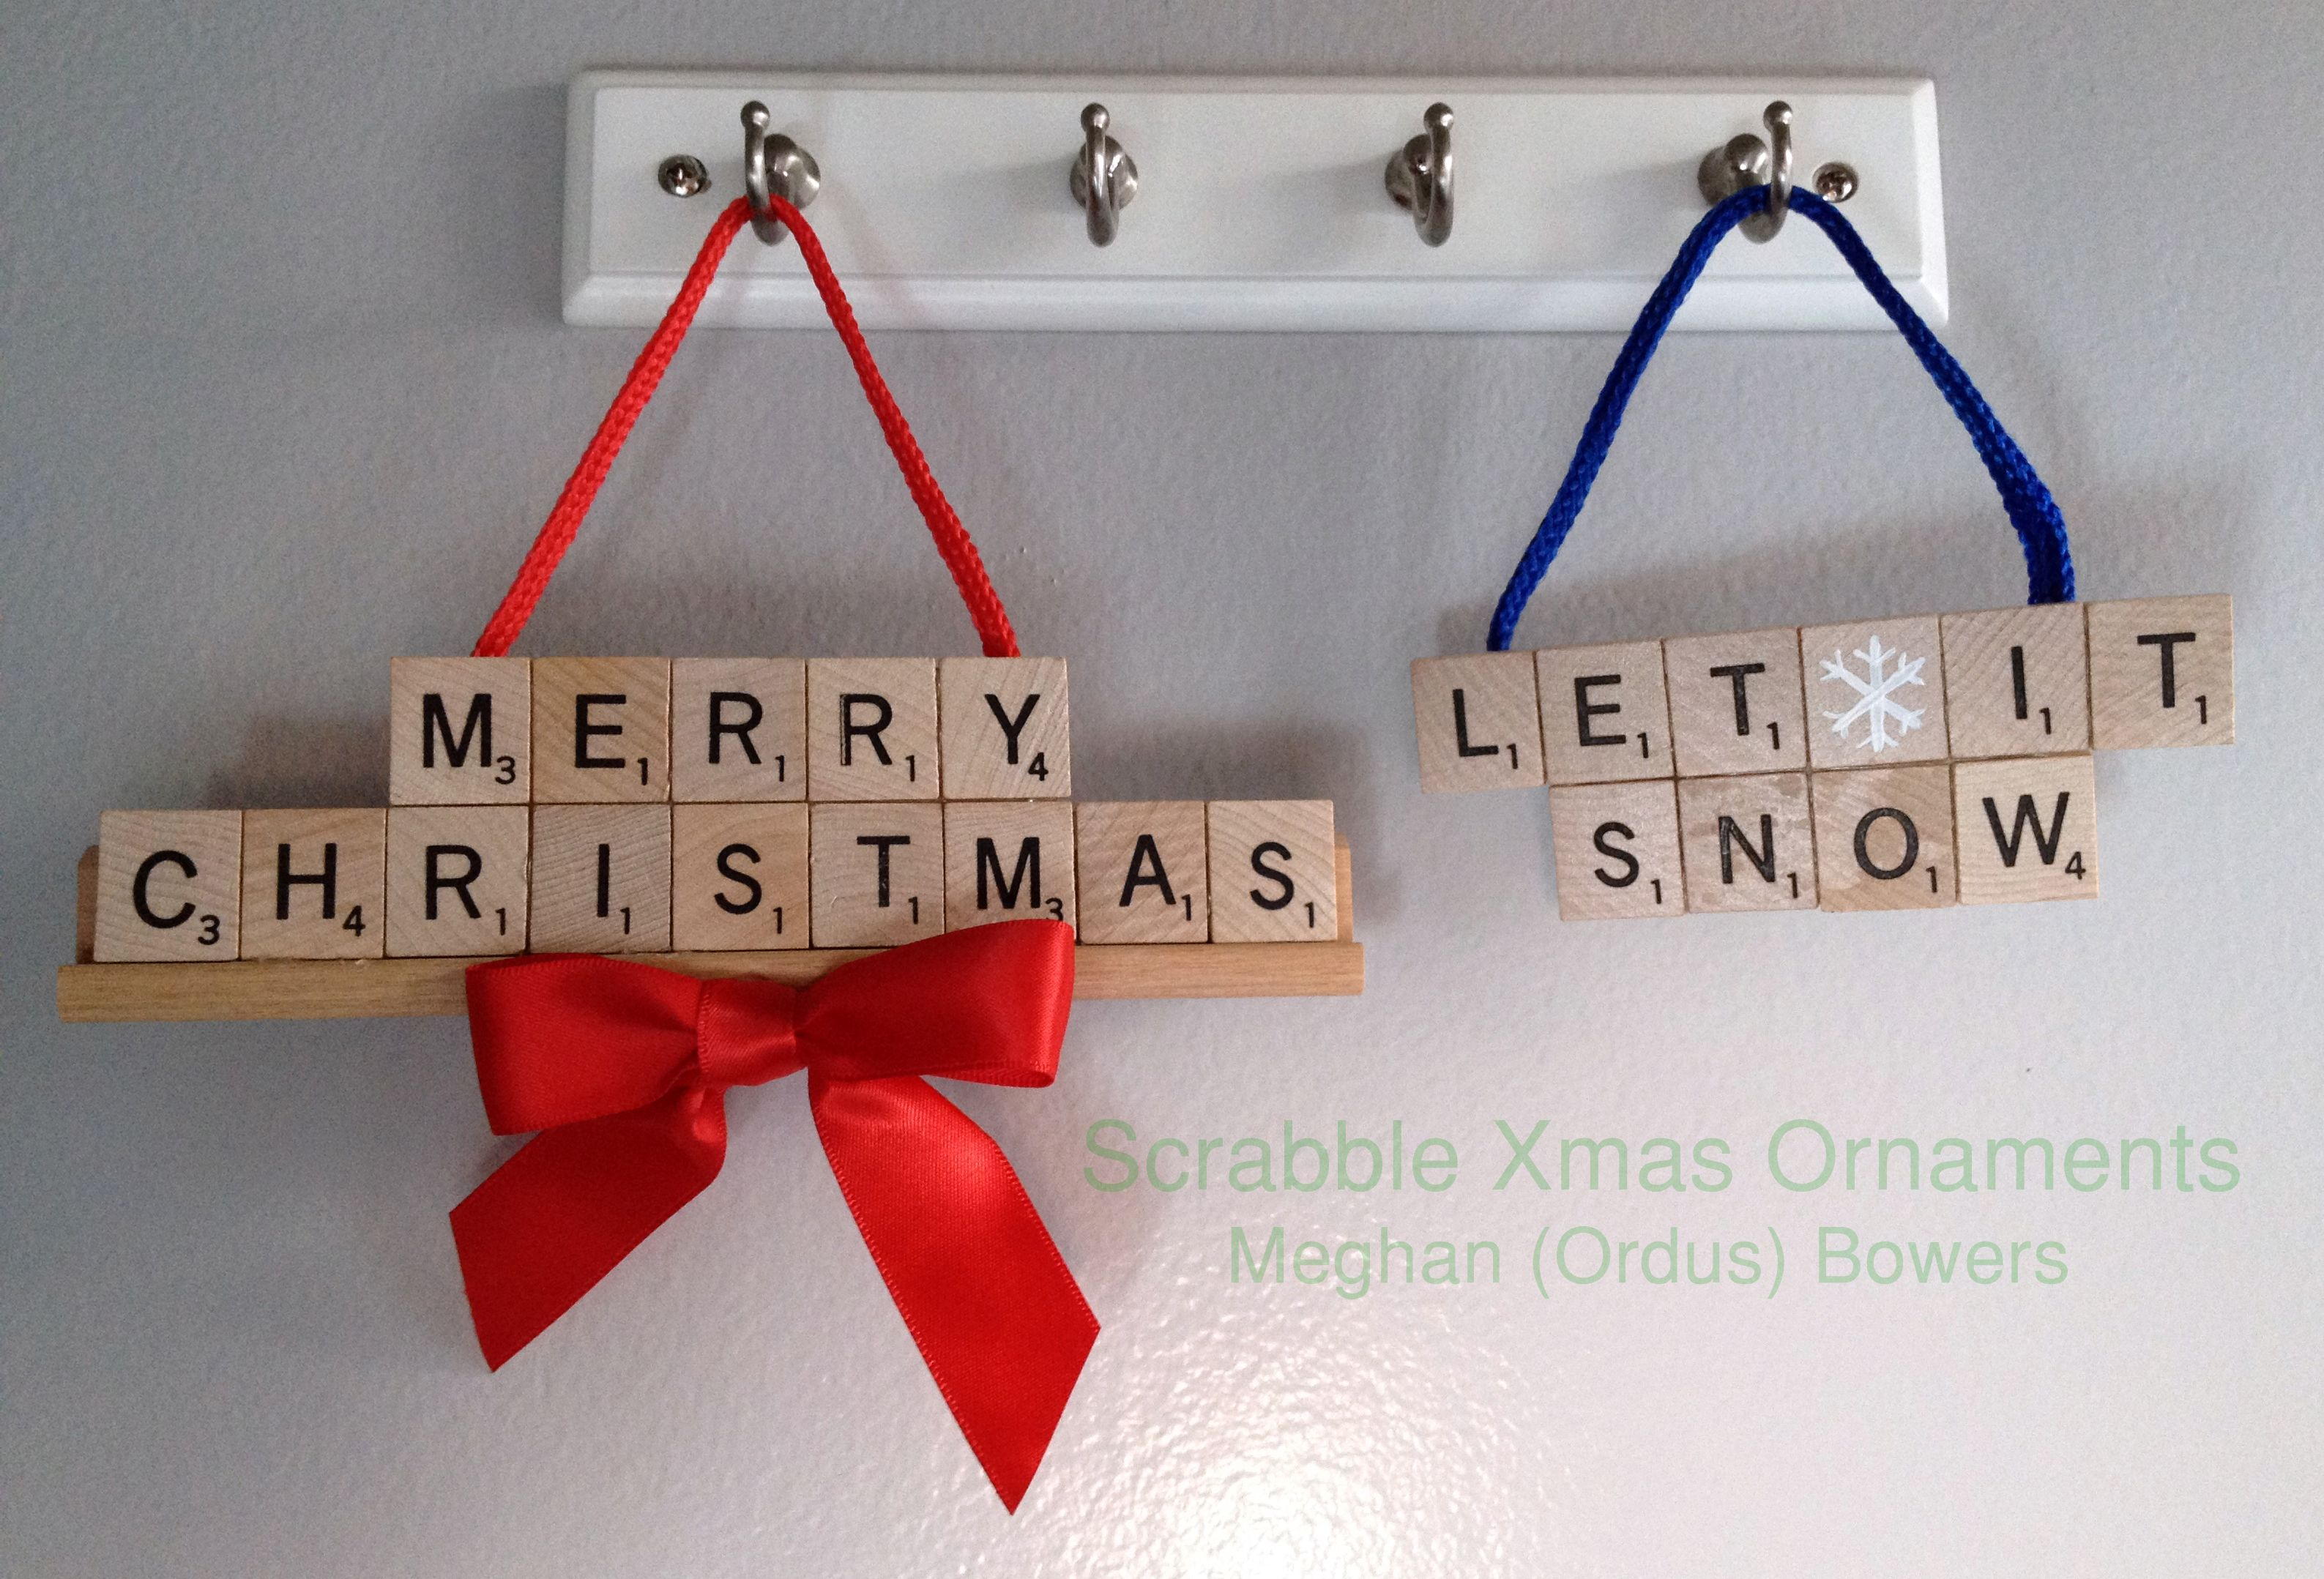 Scrabble Christmas Ornaments Meghanordus Diy